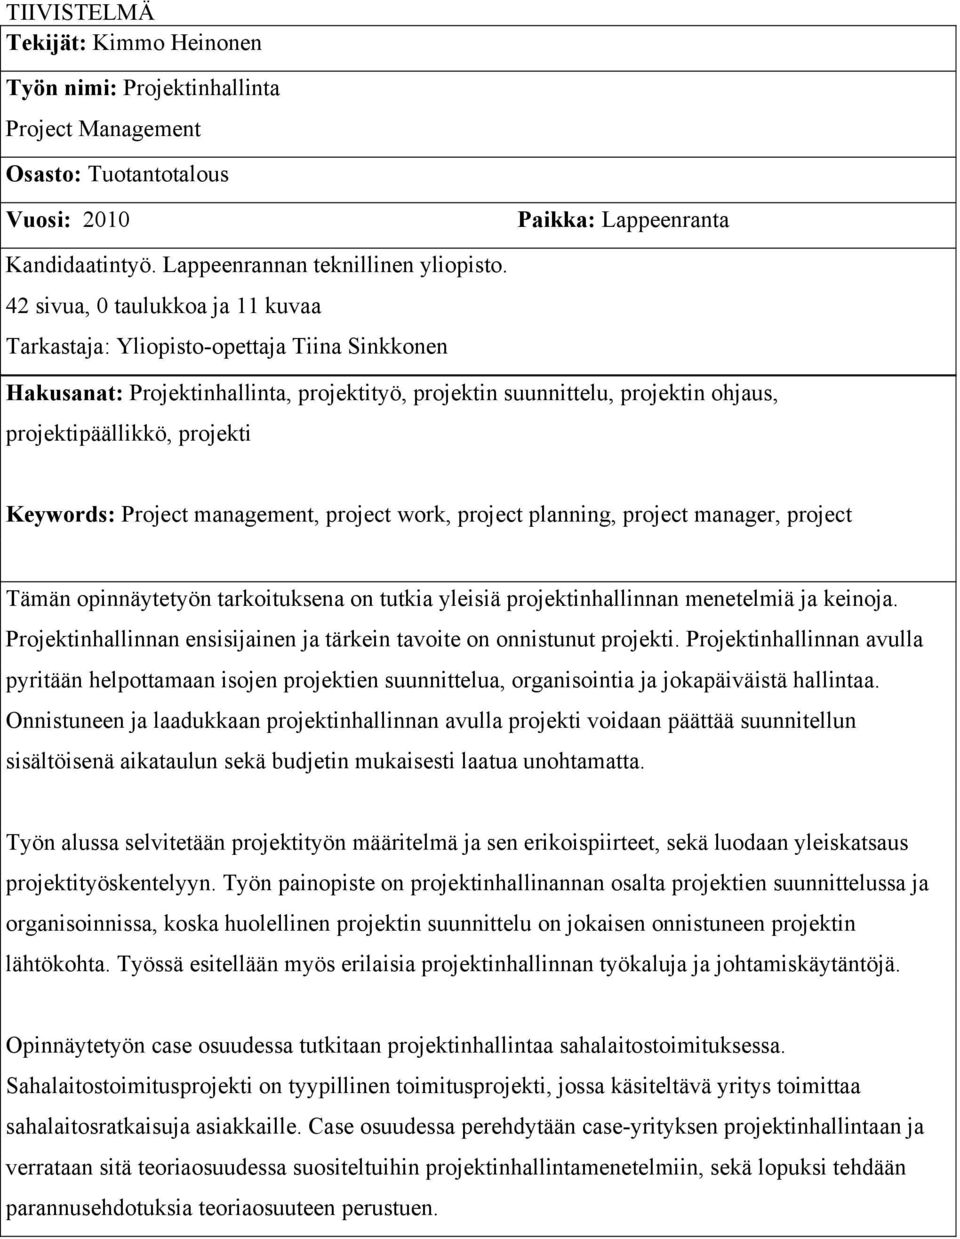 Keywords: Project management, project work, project planning, project manager, project Tämän opinnäytetyön tarkoituksena on tutkia yleisiä projektinhallinnan menetelmiä ja keinoja.